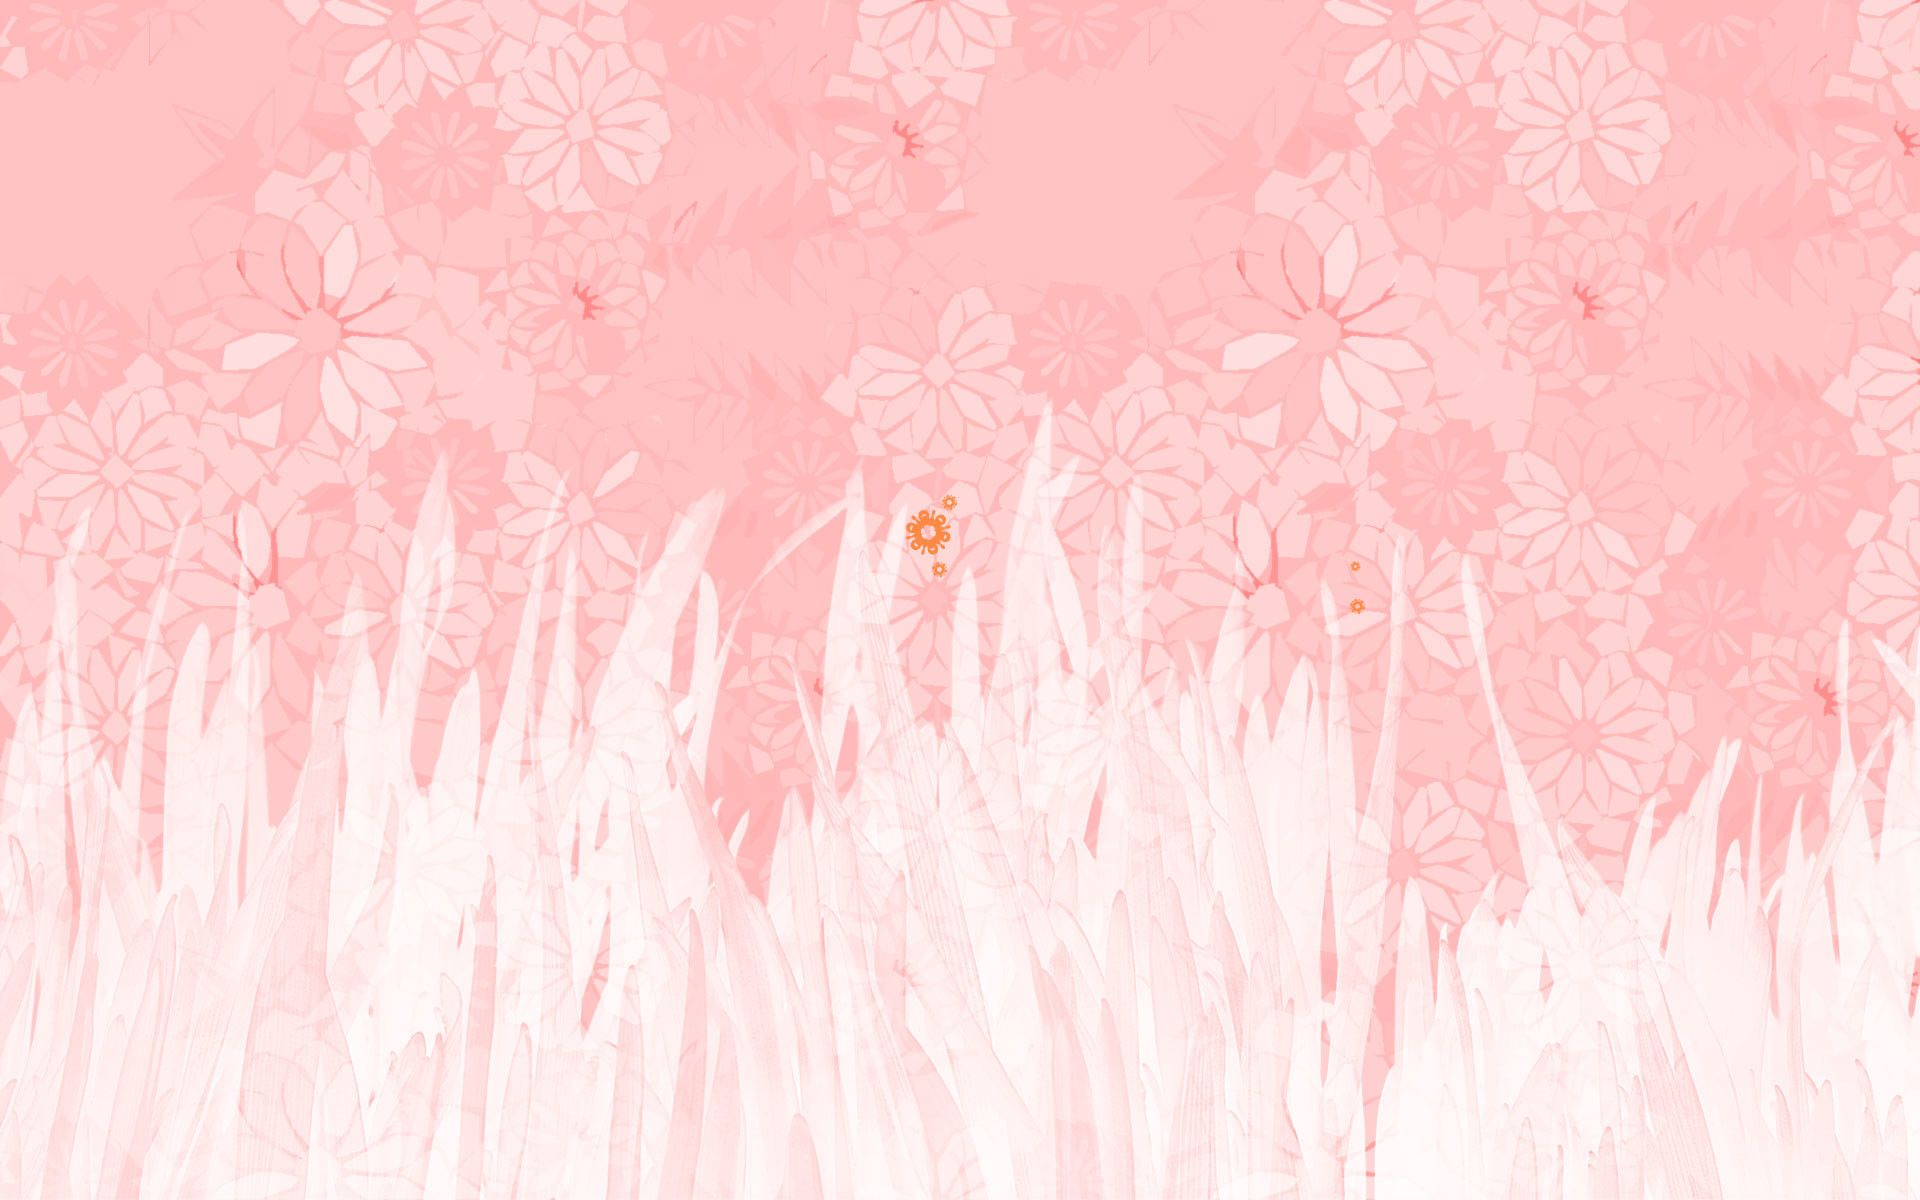 40+ Best Collections Aesthetic High Resolution Pink Background Hd